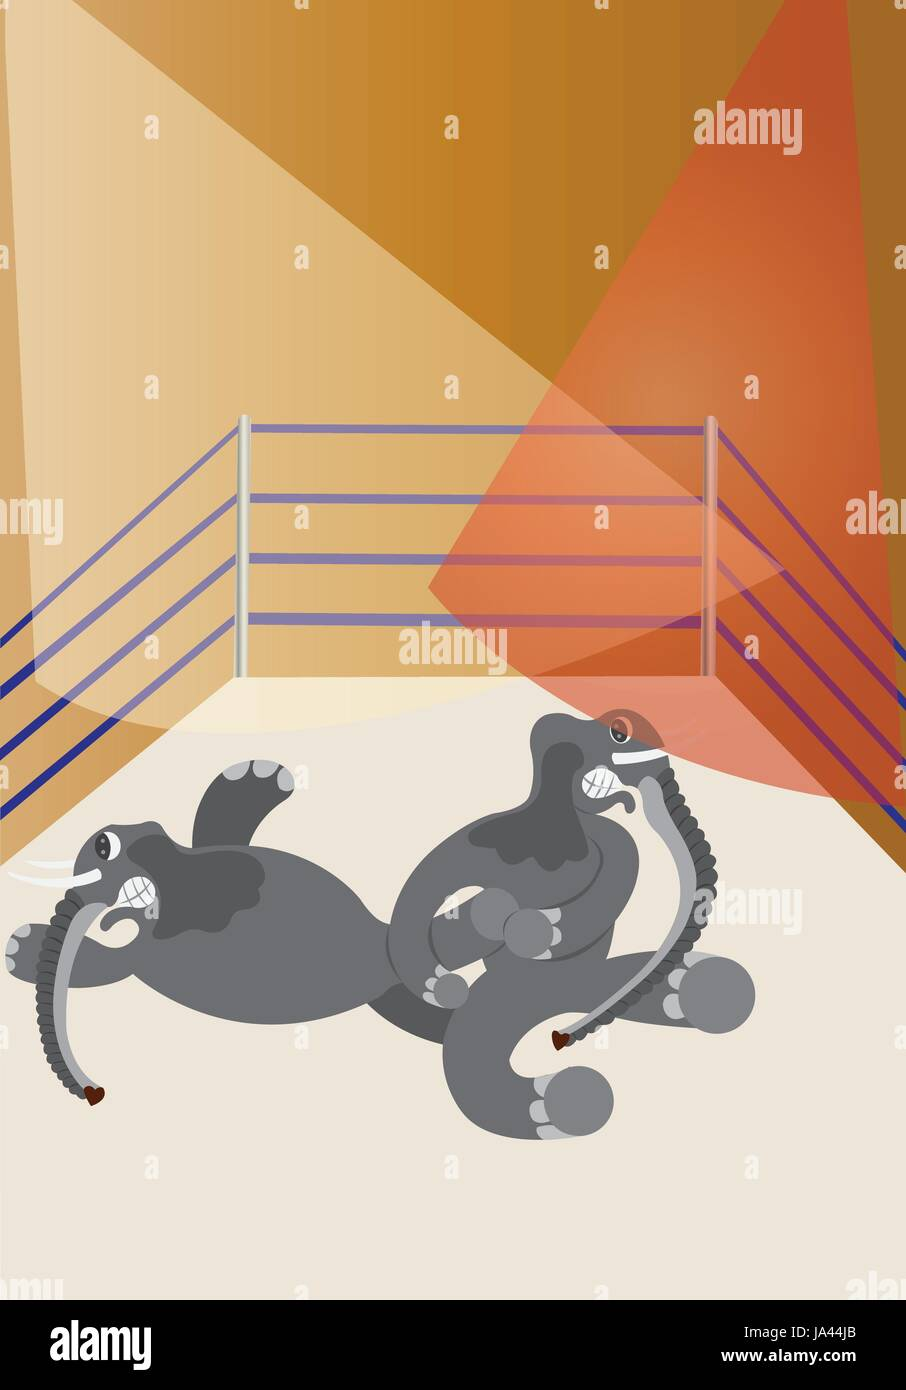 two big elephants wrestling in a ring - Stock Image